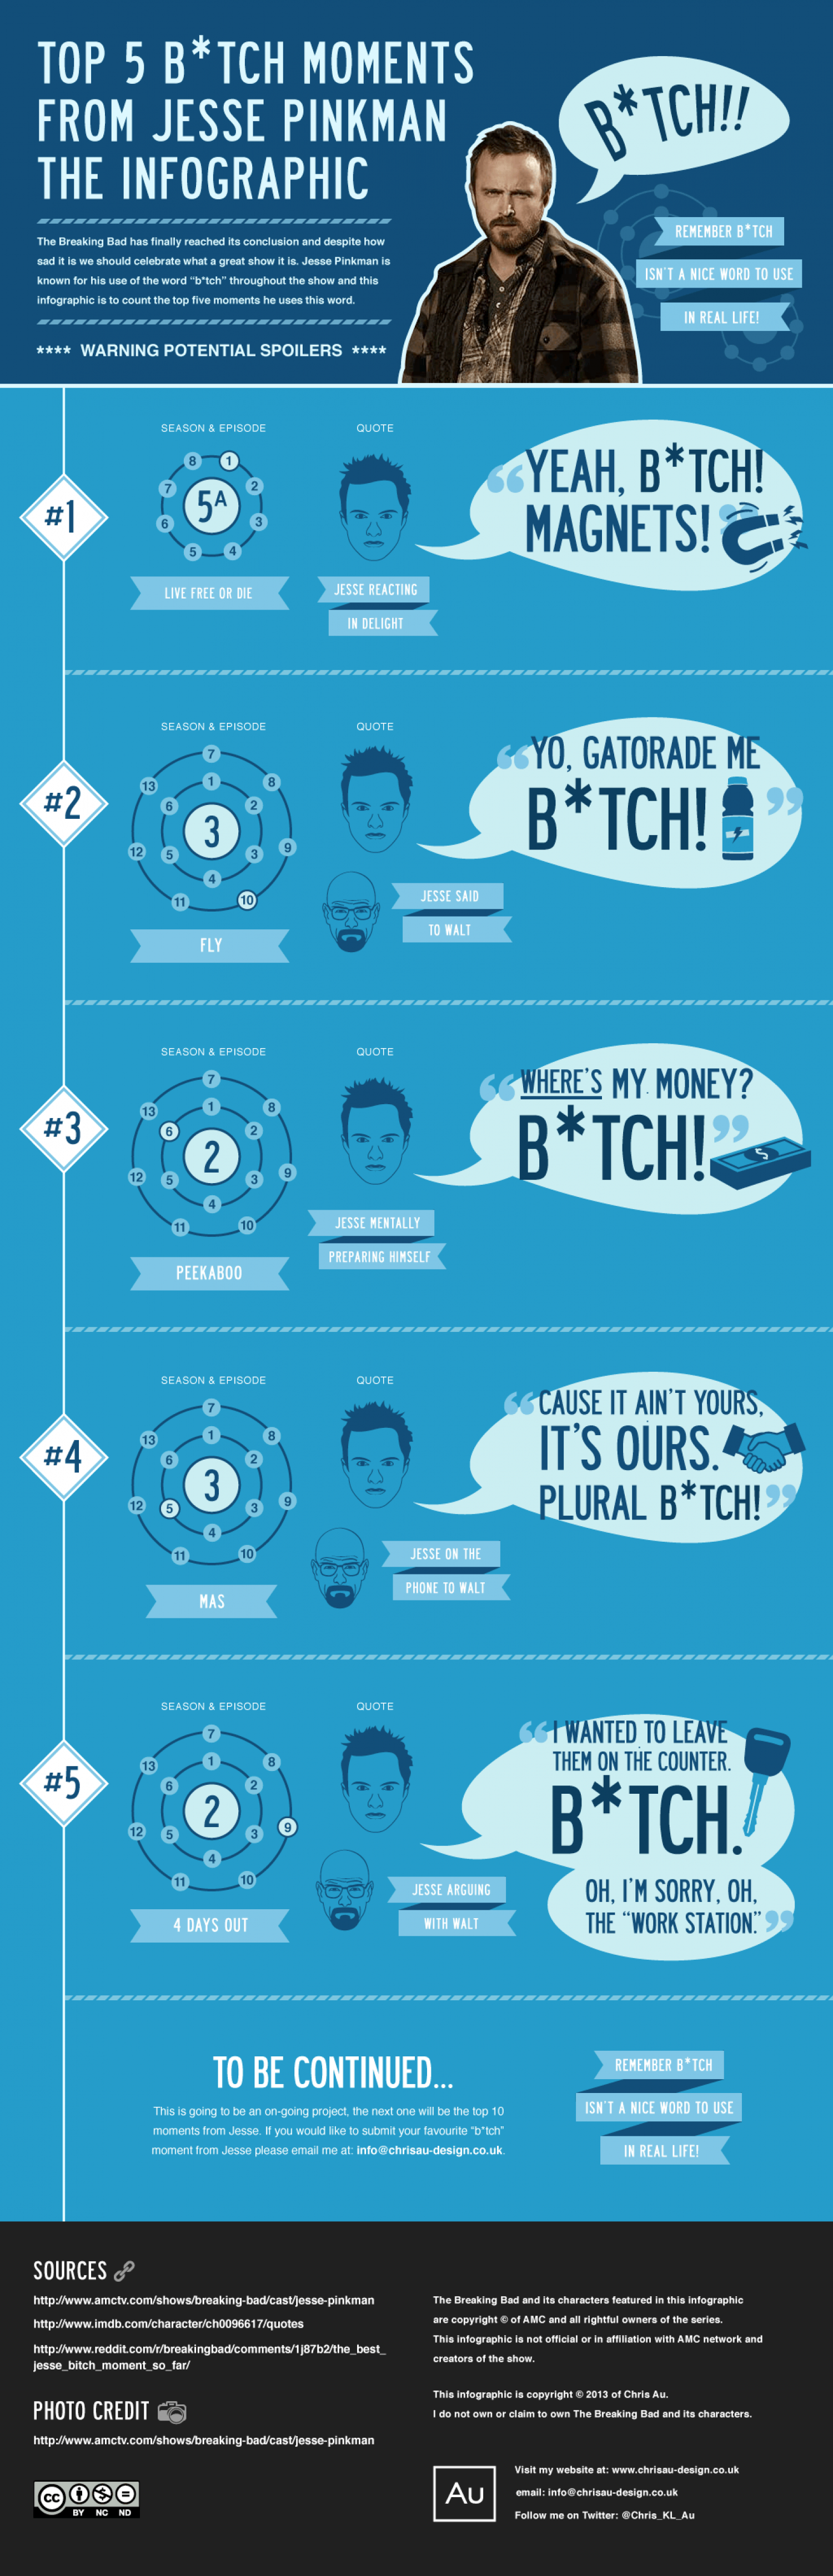 Breaking Bad Top 5 B*tch moments from Jesse Pinkman Infographic